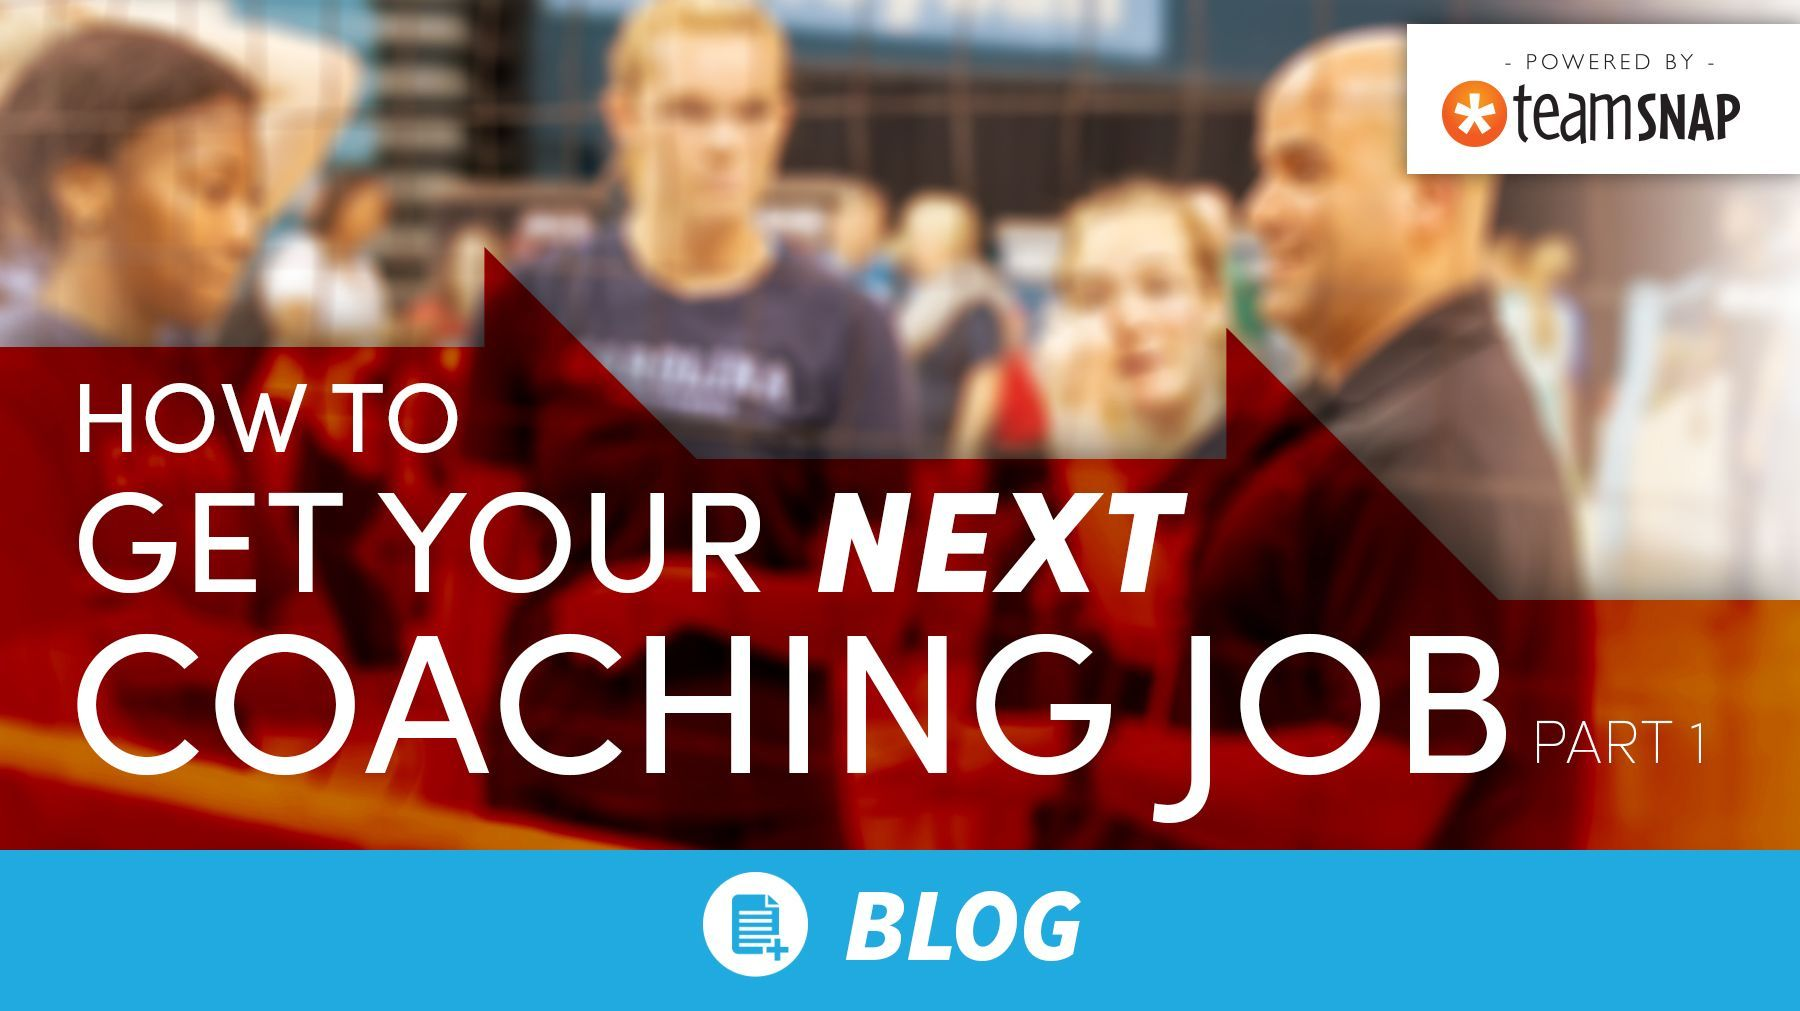 How To Get Your Next Coaching Job Part 1 The Art Of Coaching Volleyball Coaching Volleyball Coaching Volleyball Players